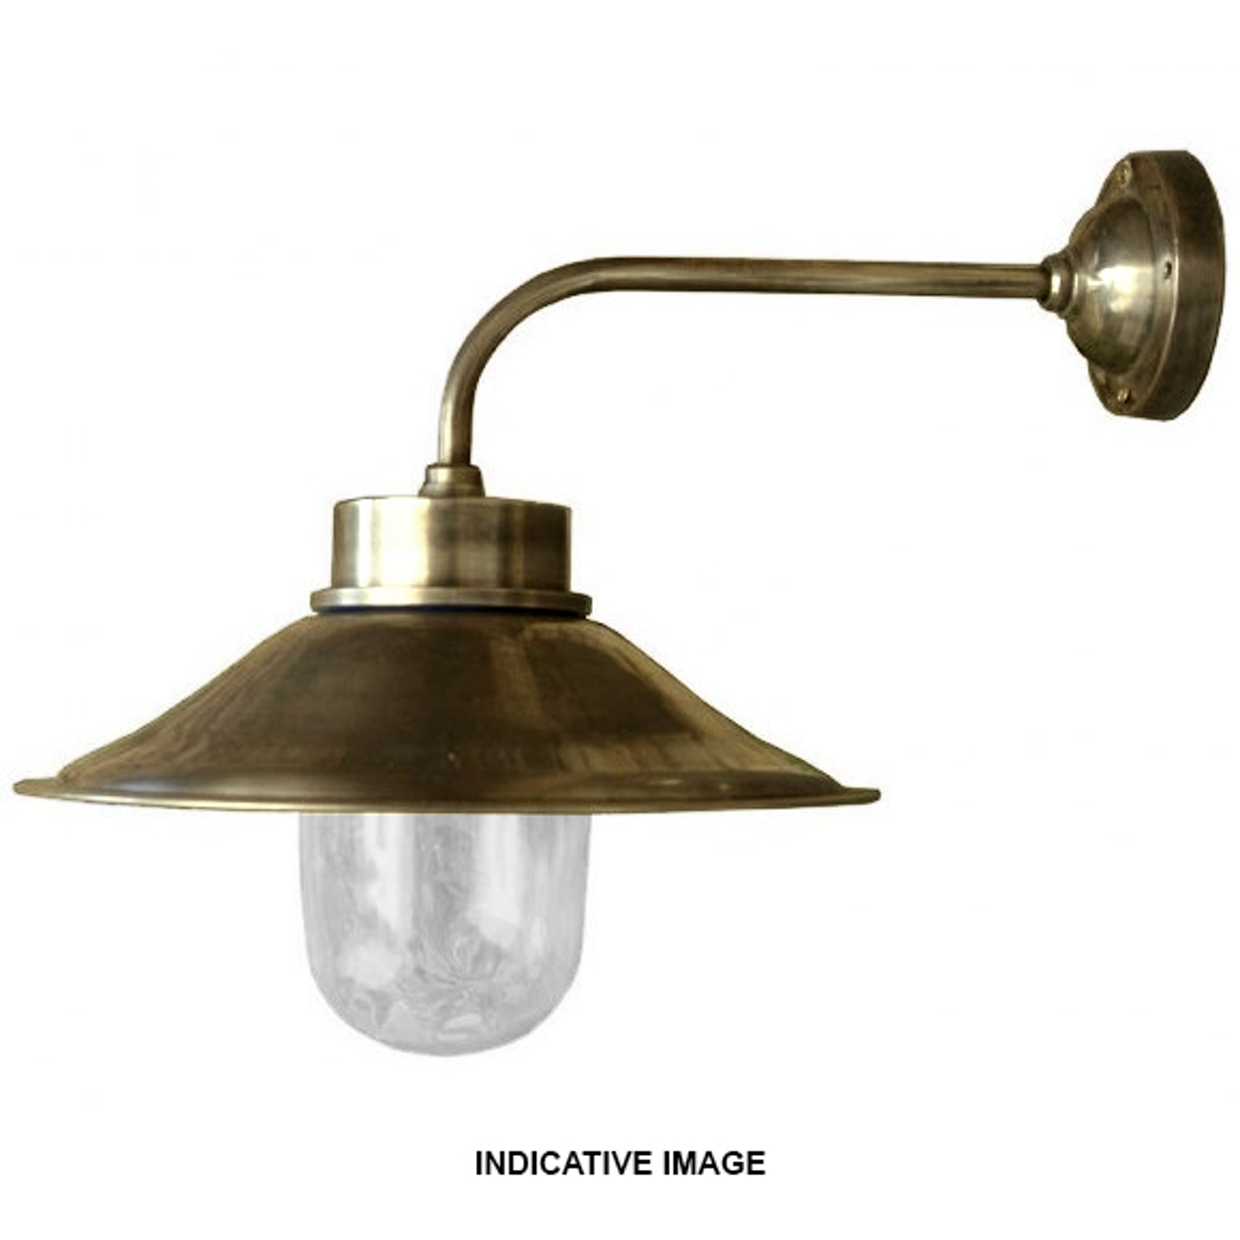 Cape Cod Brass wall light IP54